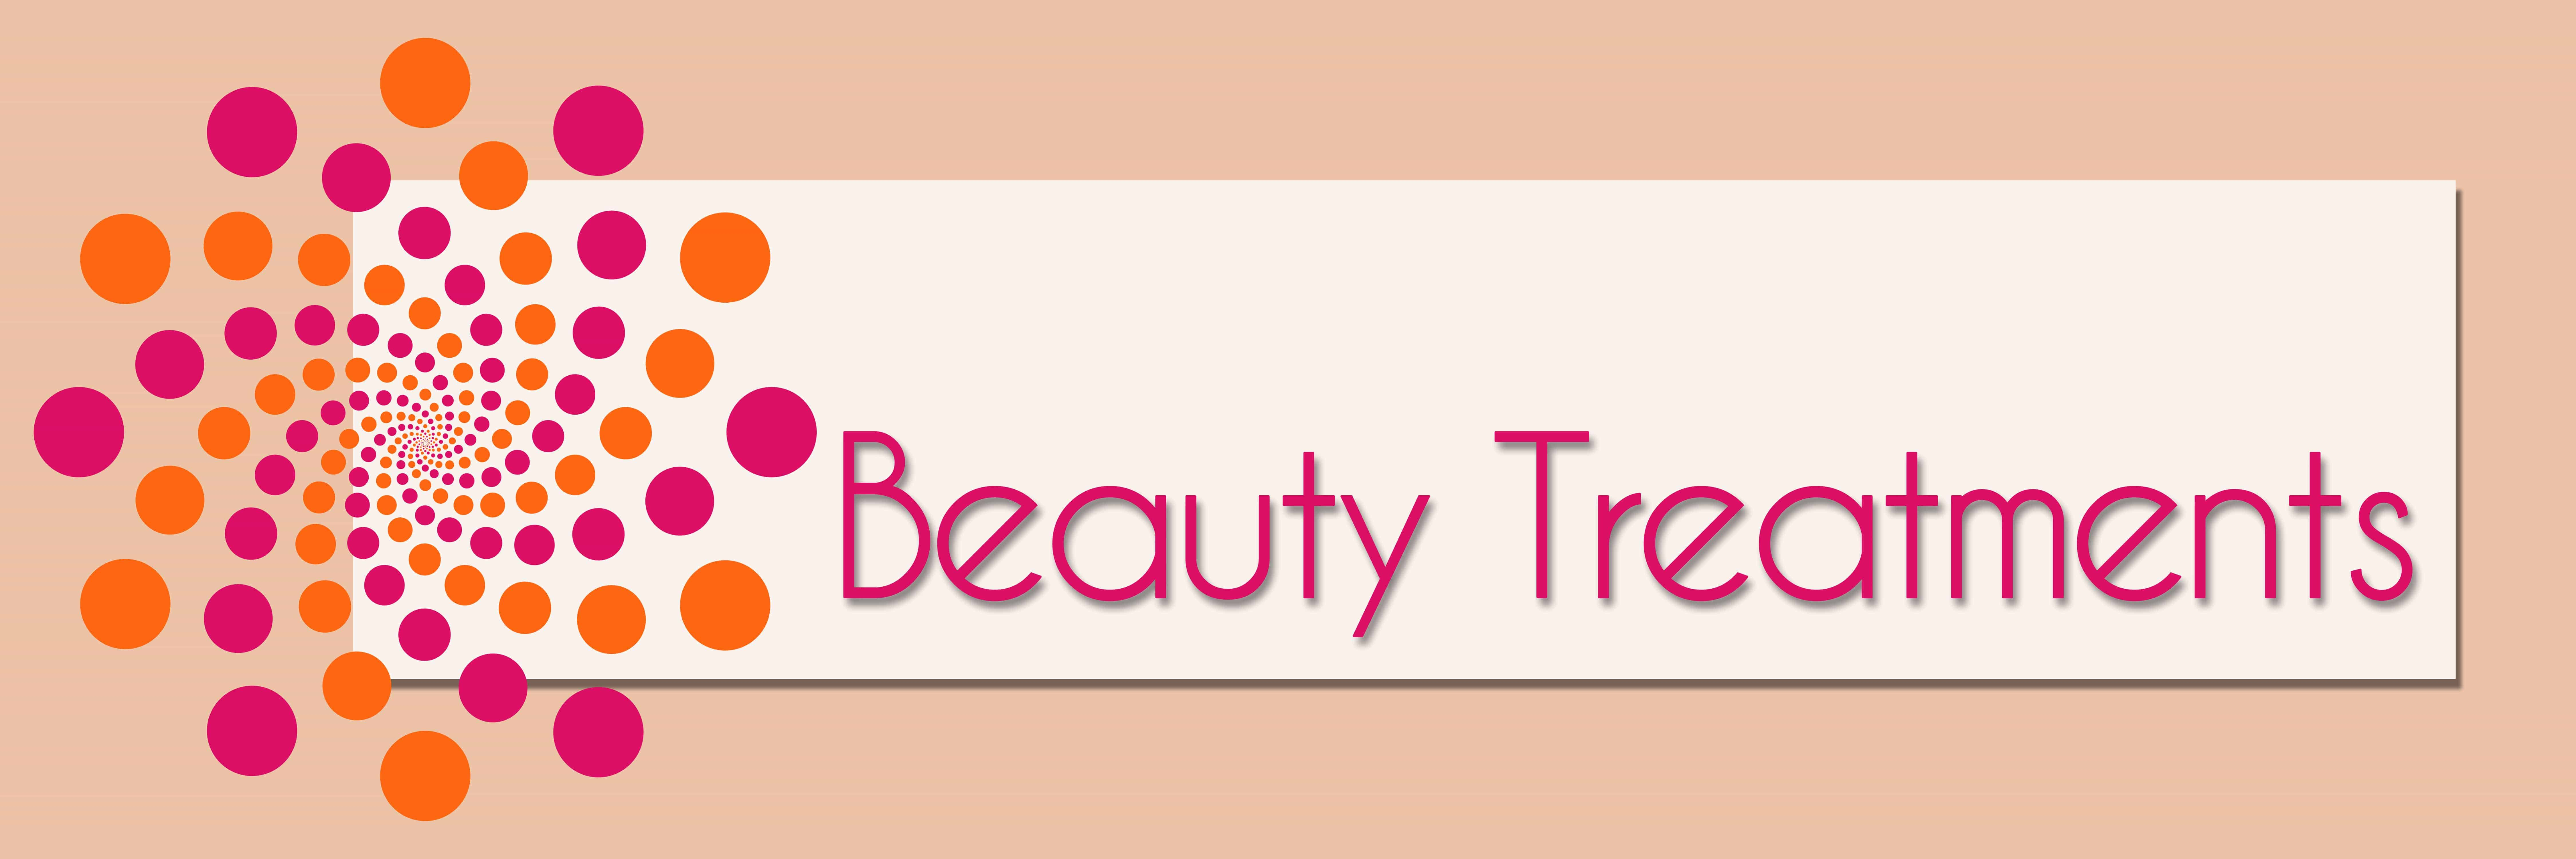 Banner with Beauty Treatments in red text